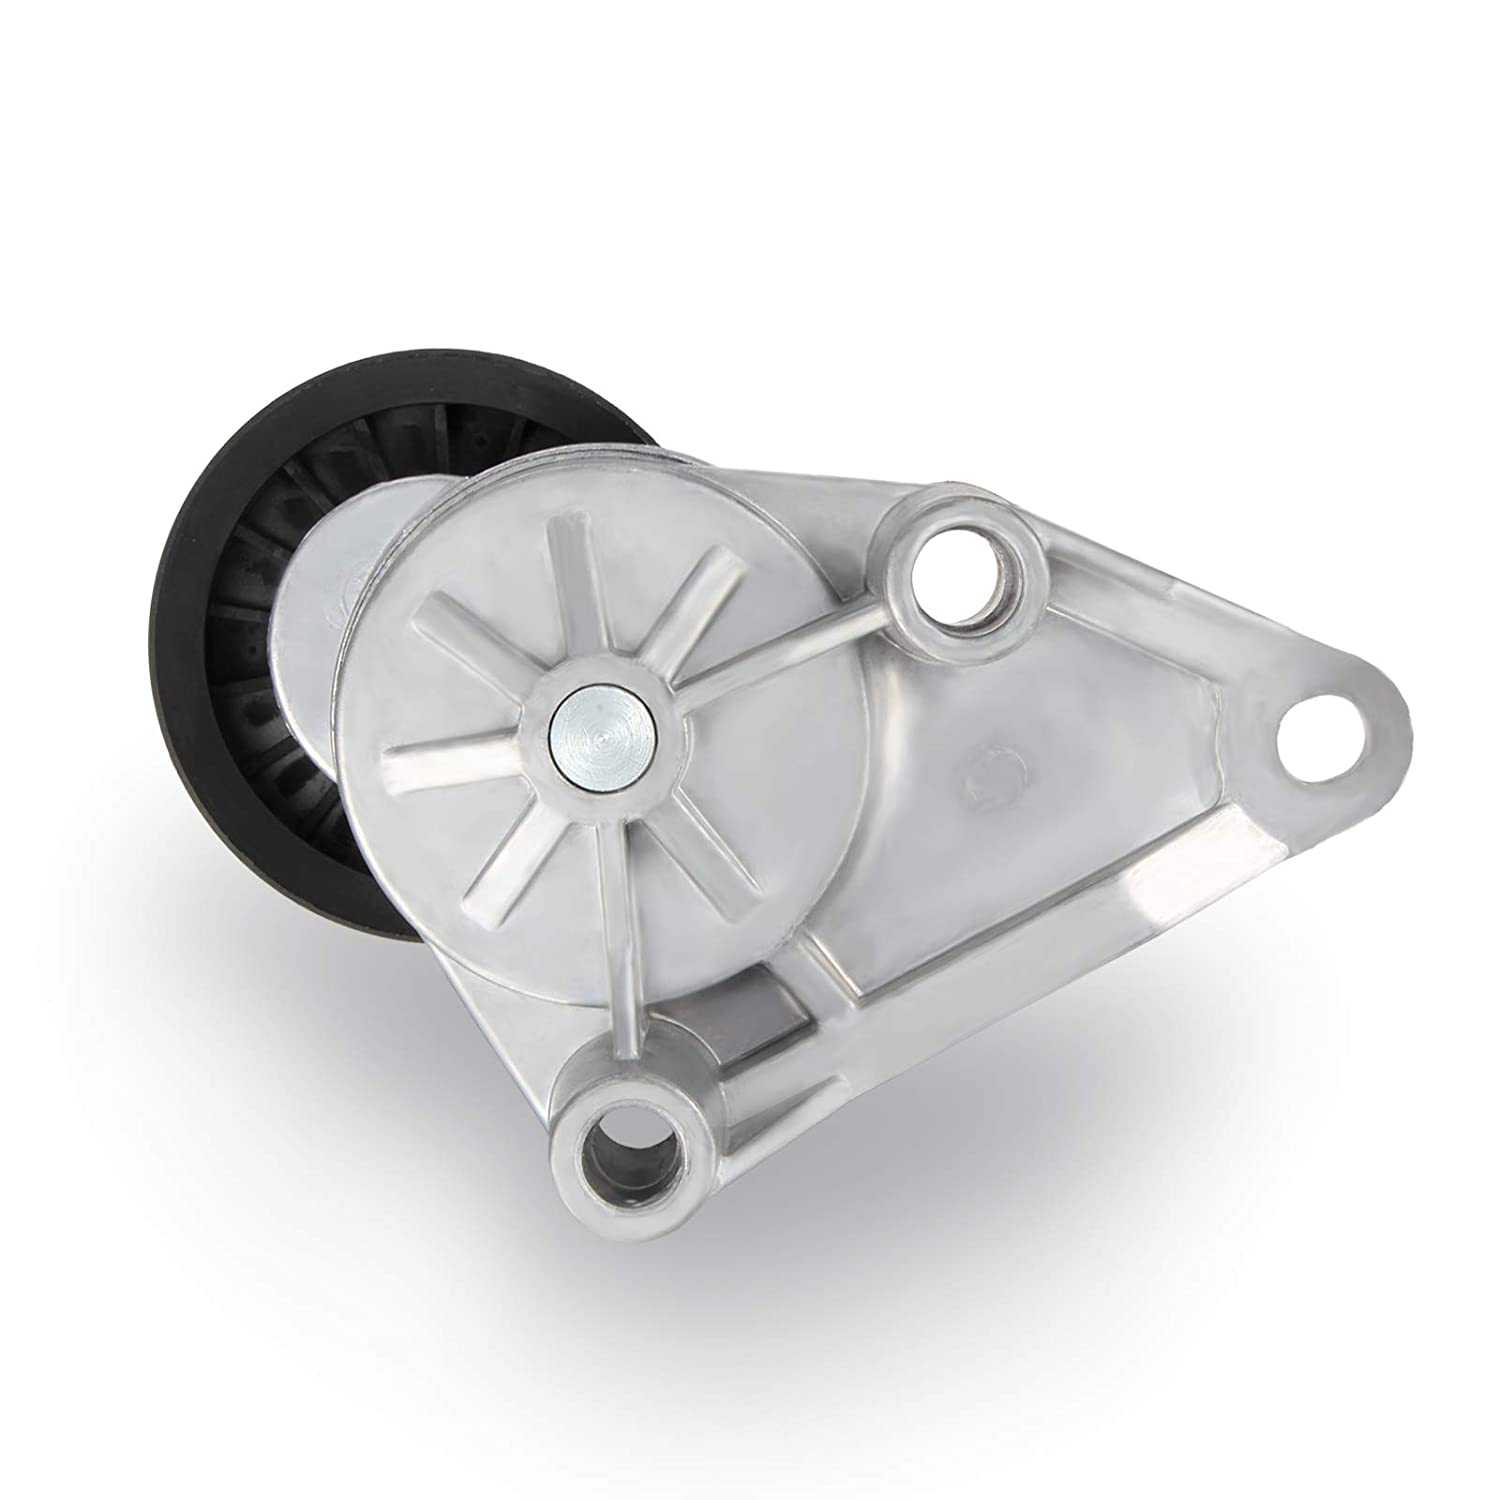 Dromedary Automatic Belt Tensioner and Pulley Assembly 88929140 38158